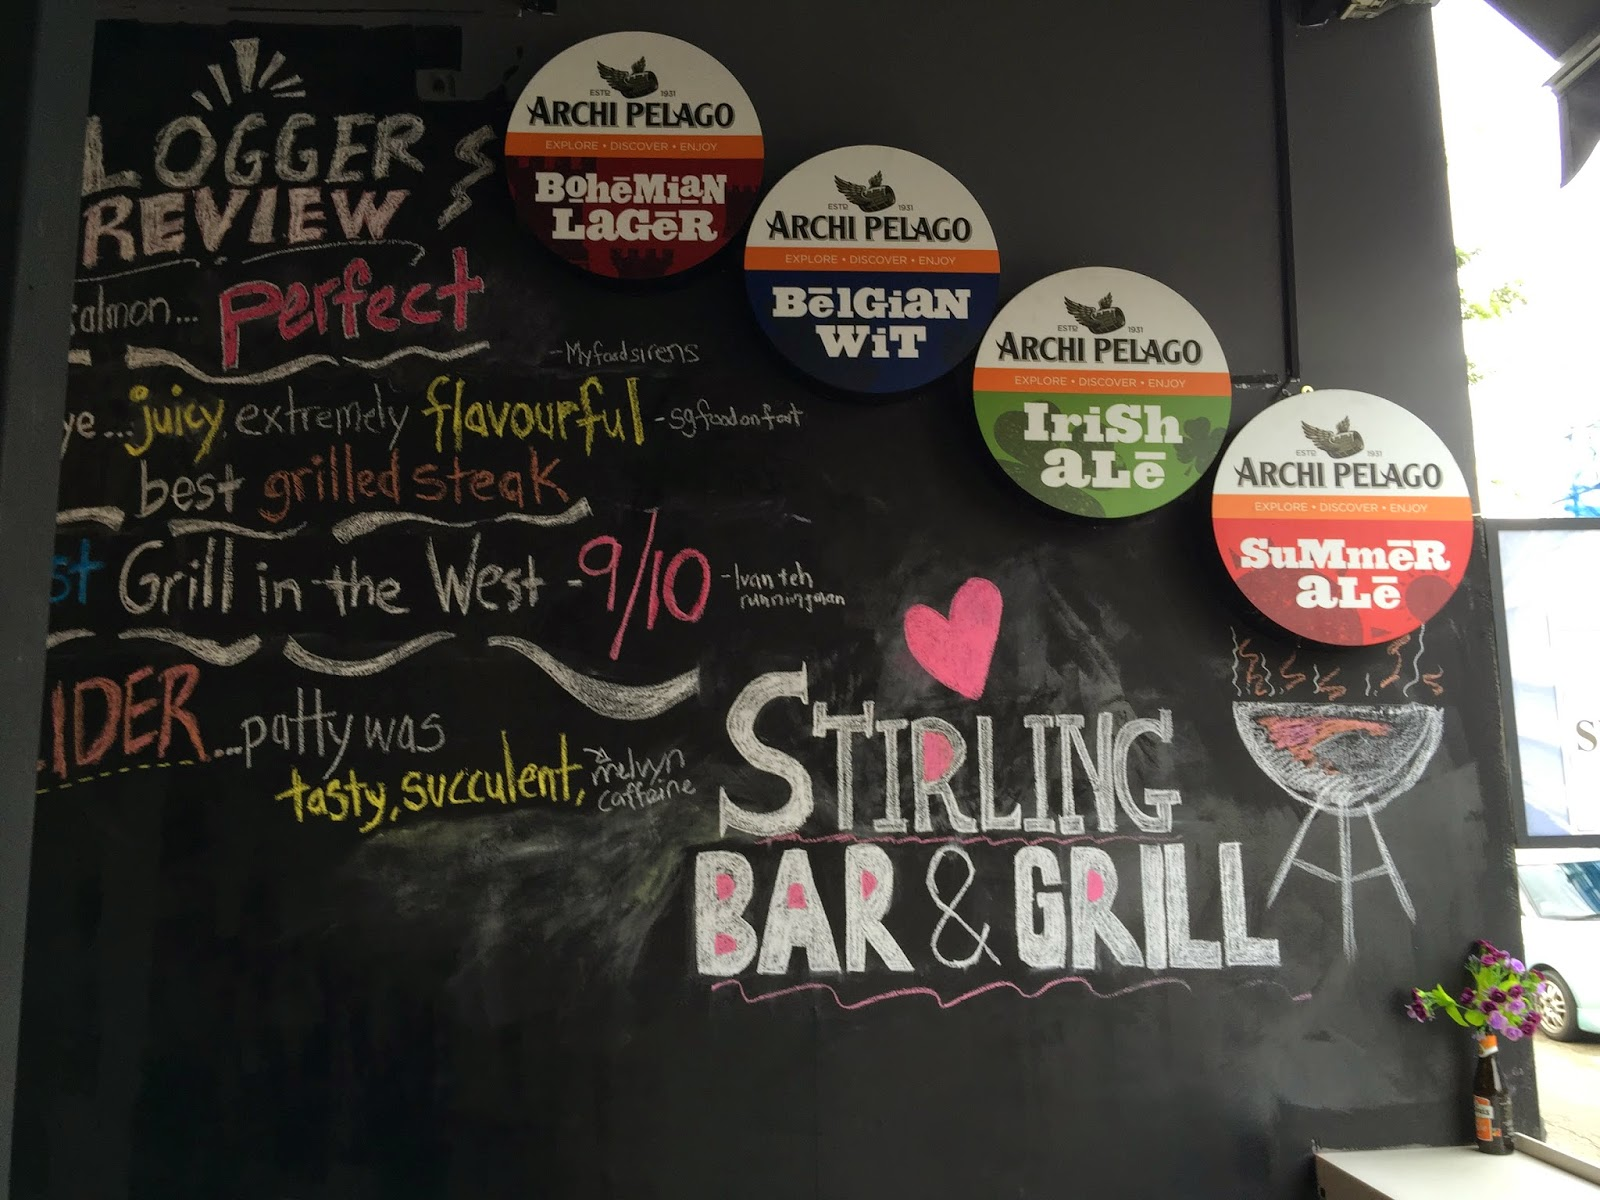 stirling bar & grill